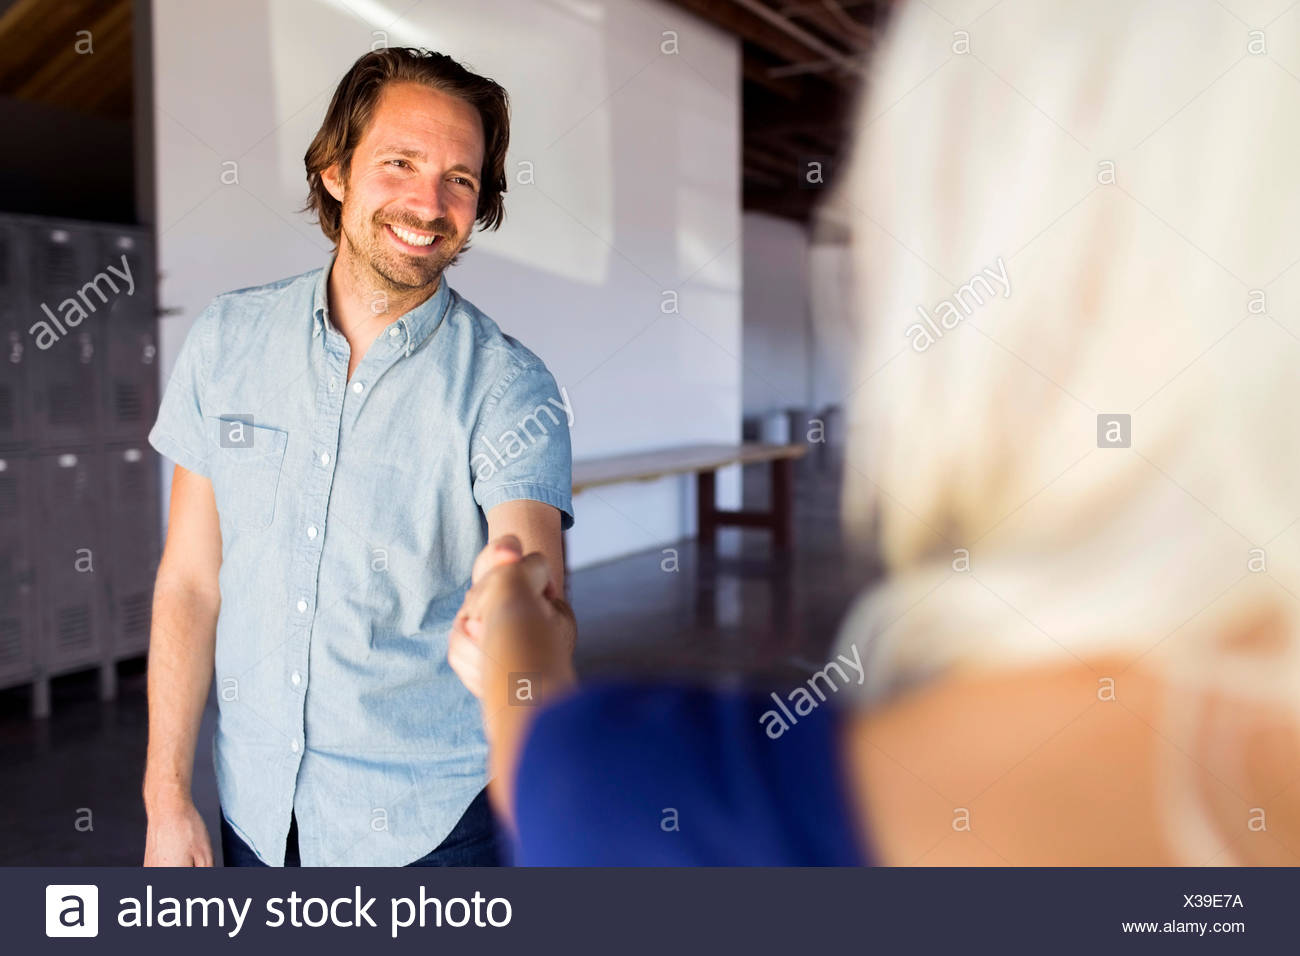 Man and Woman shaking hands Photo Stock